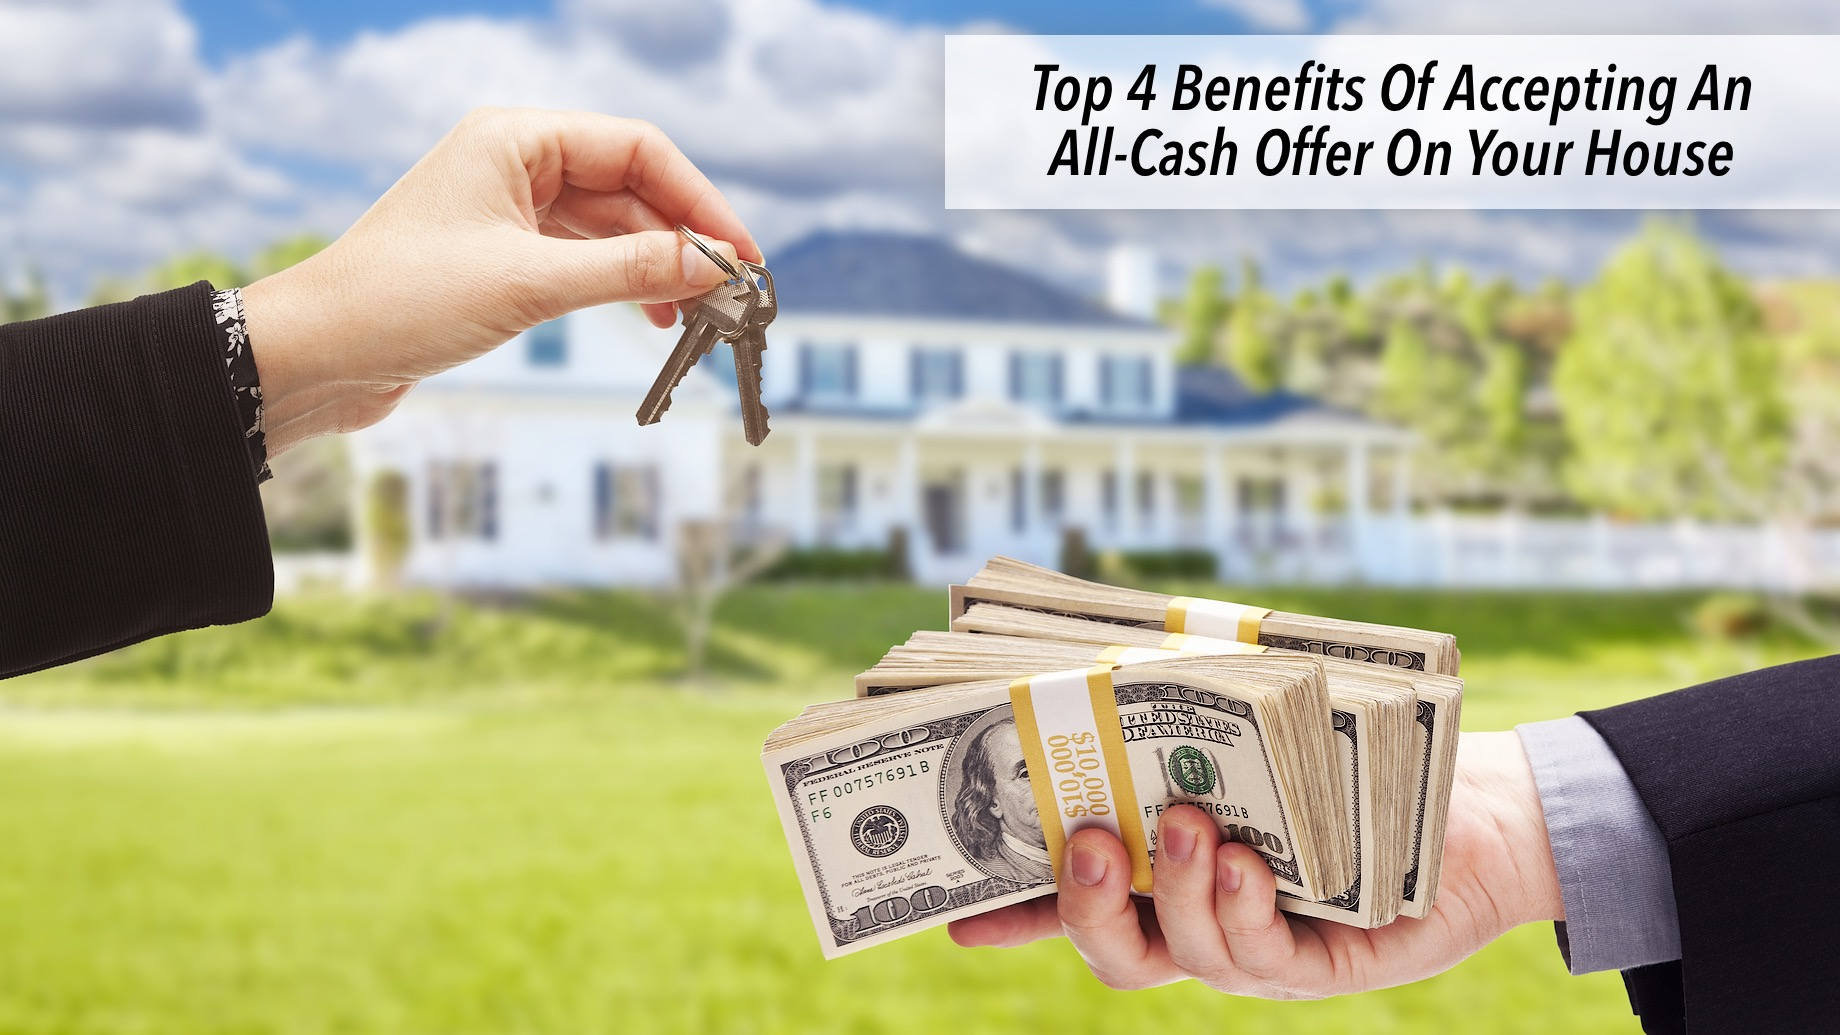 Top 4 Benefits Of Accepting An All-Cash Offer On Your House